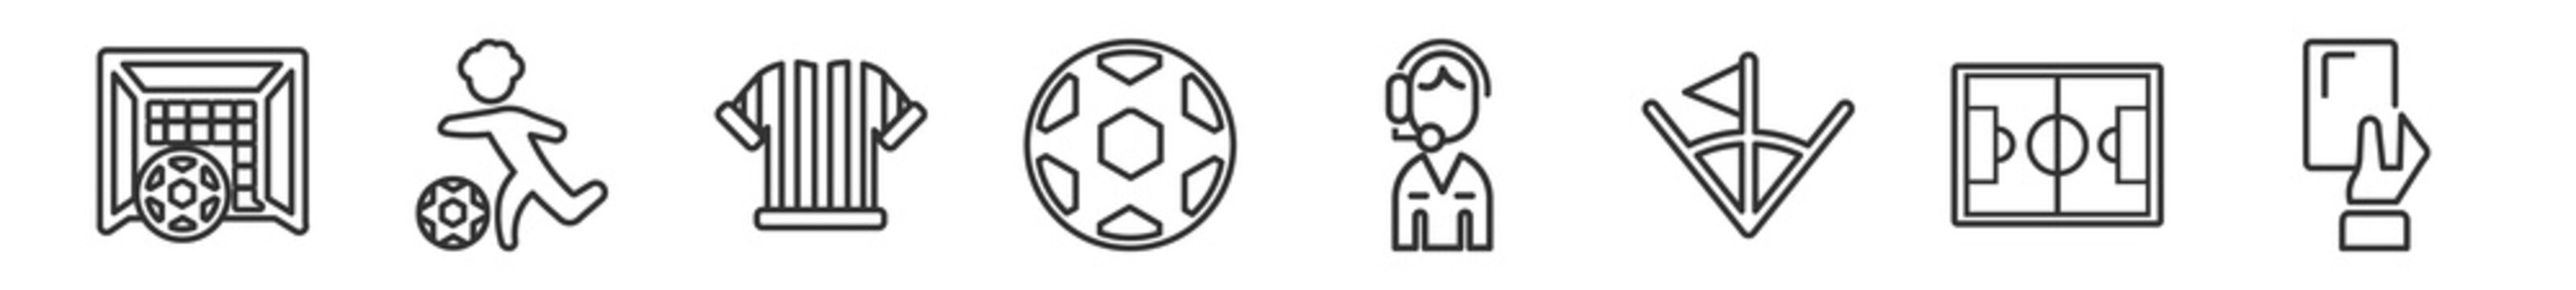 outline set of football line icons. linear vector icons such as soccer goal, player, referee jersey, soccer ball, commentator, card. vector illustration.